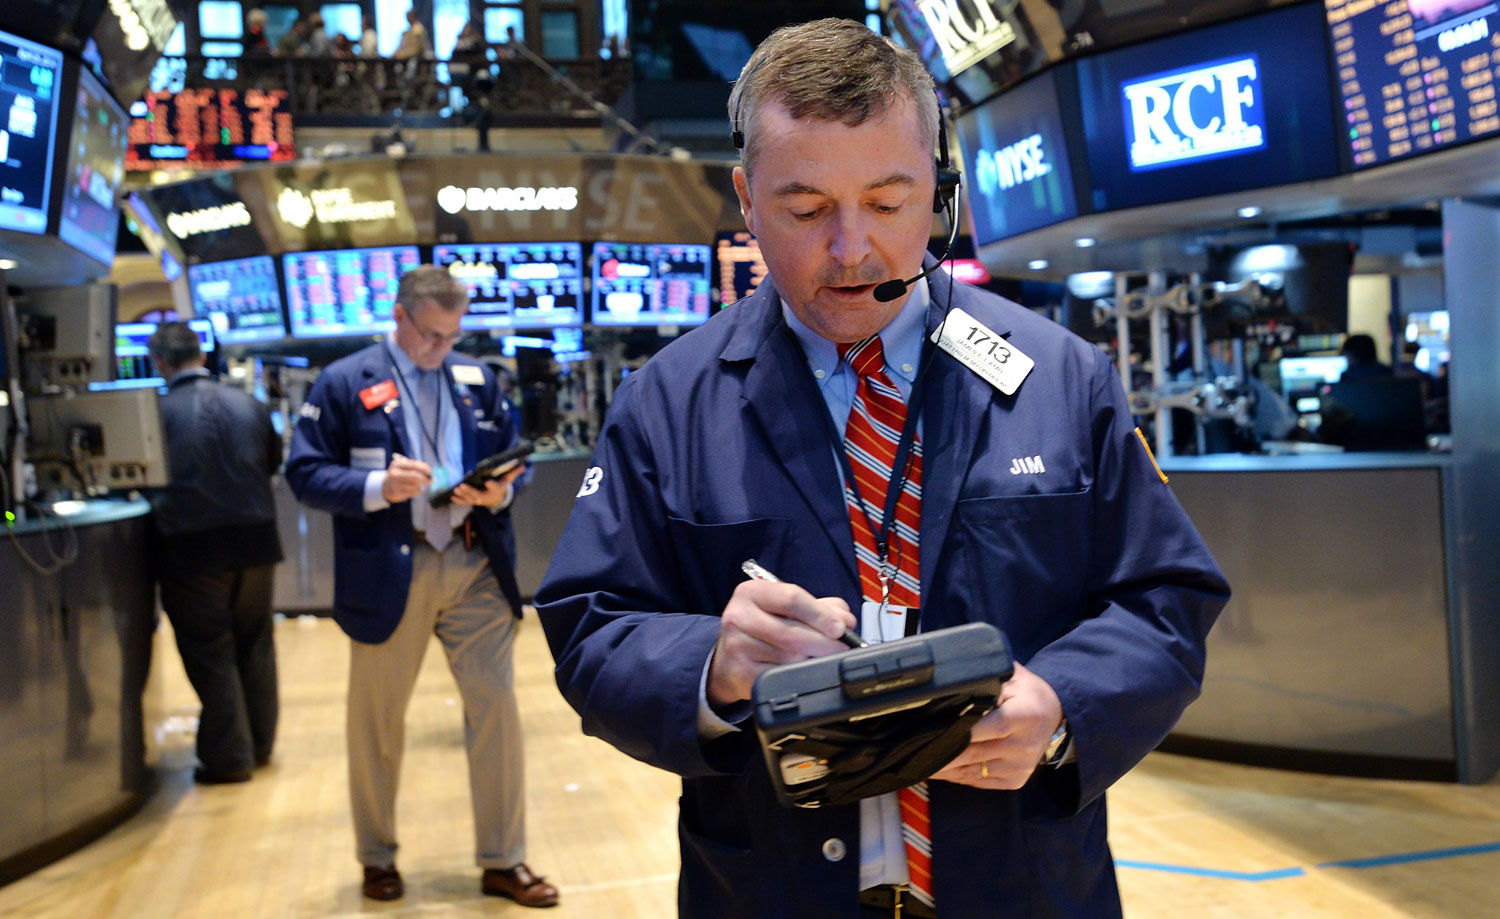 A trader works on the floor of the New York Stock Exchange at the end of the trading day in New York,  April 25, 2014.